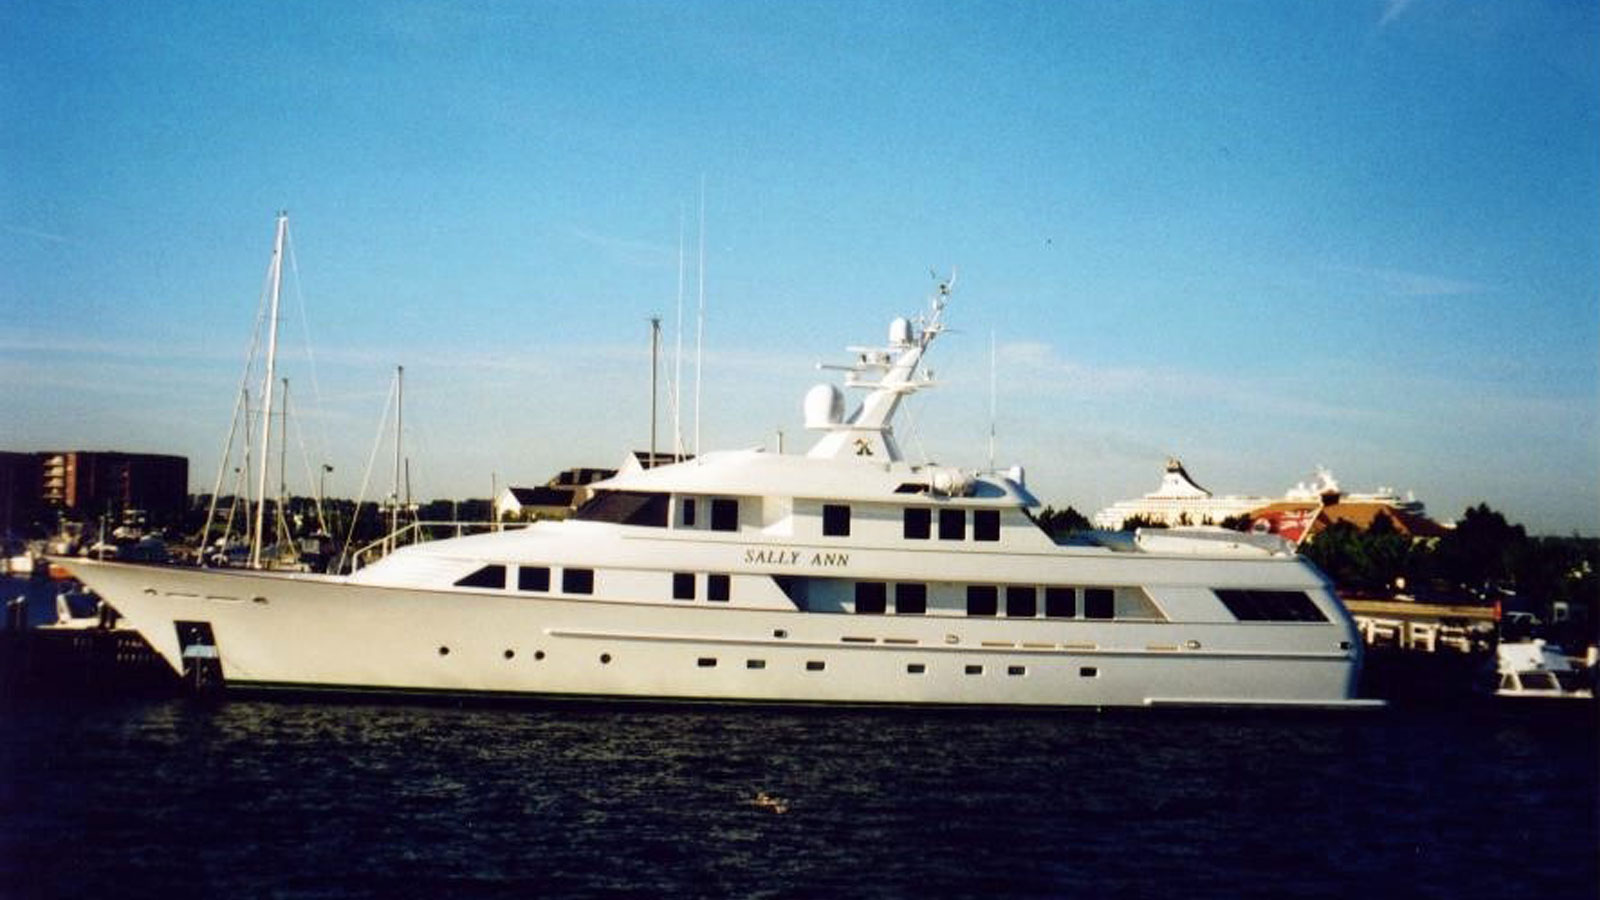 Superyacht Sally Ann at sea